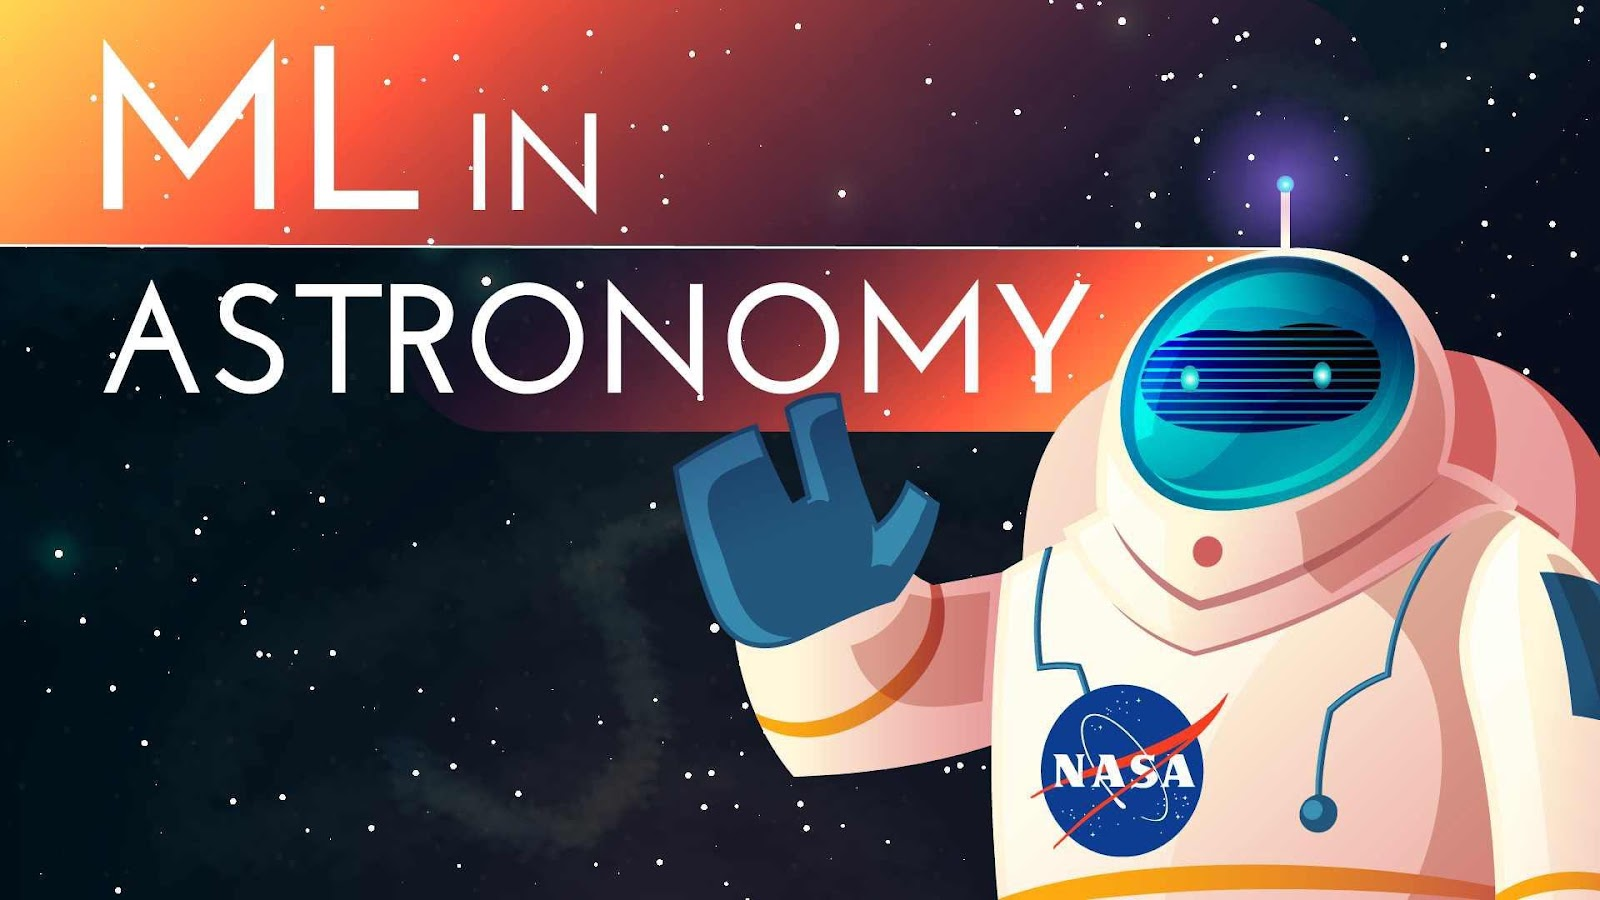 machine-learning-astronomy-365-data-science